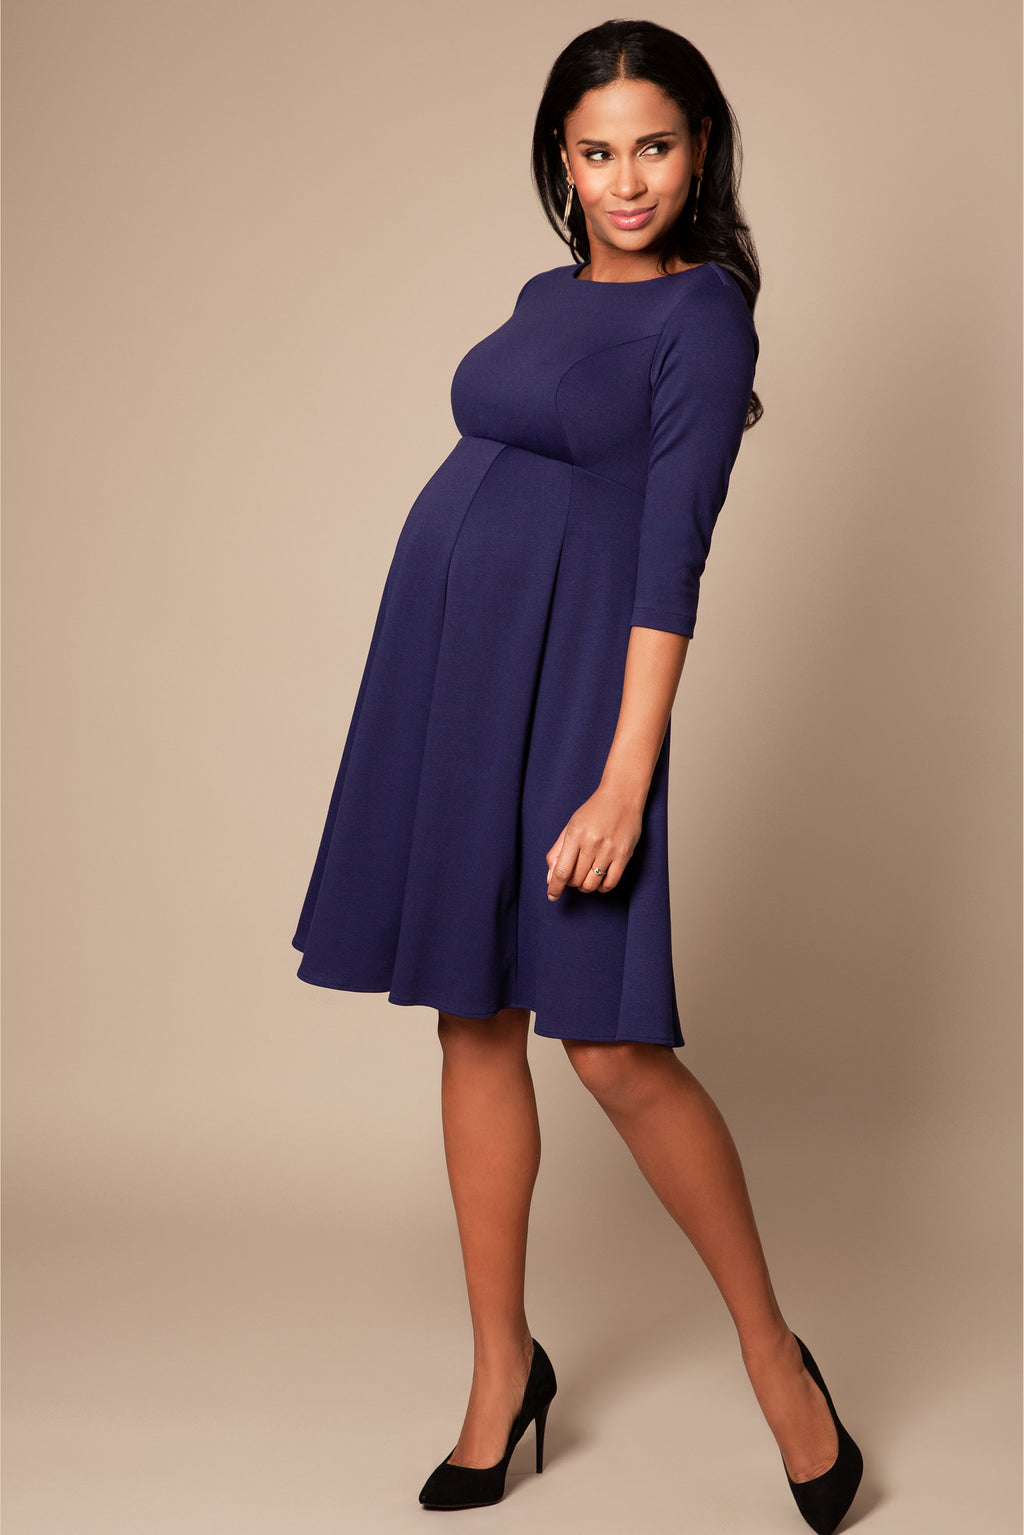 Tiffany Rose Sienna Maternity Dress in Persian Blue - Seven Women Maternity